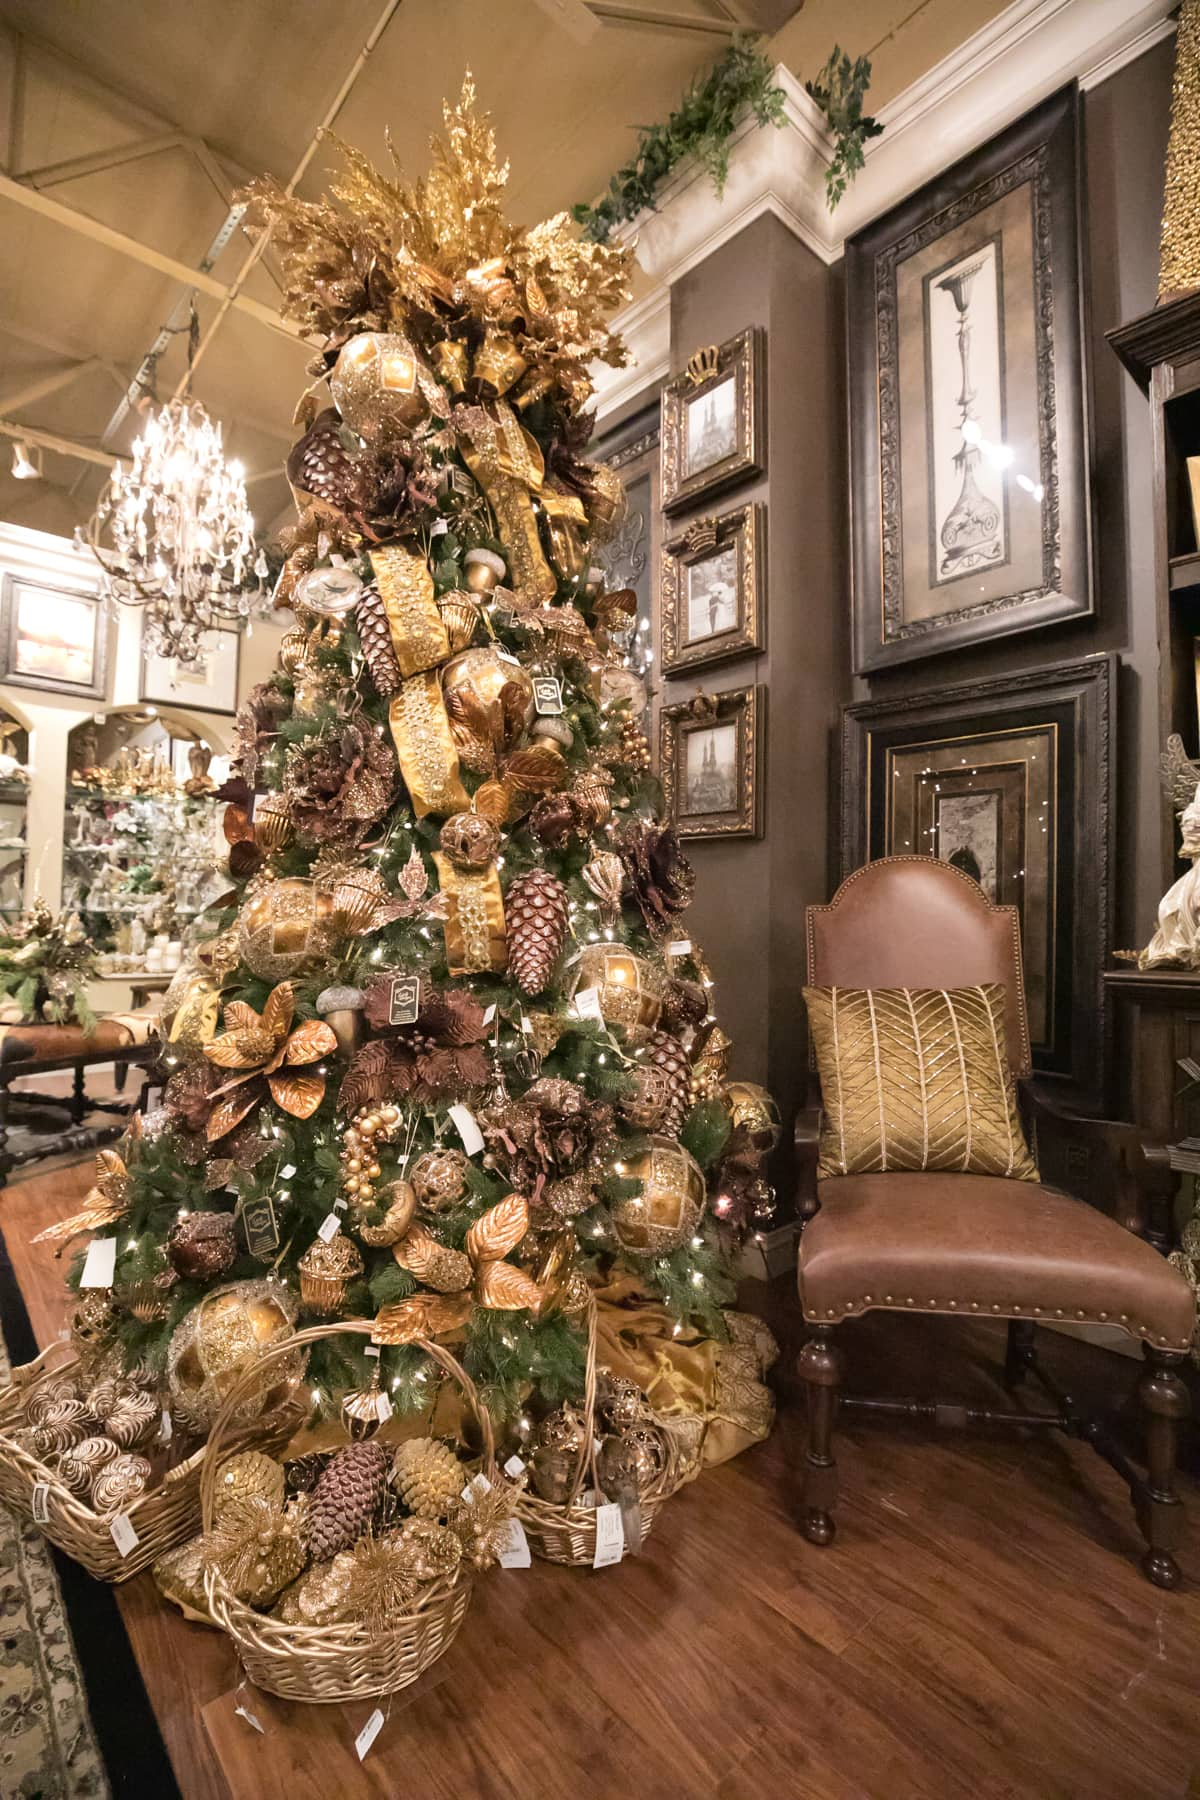 Luxurious Christmas Decorations For The Home